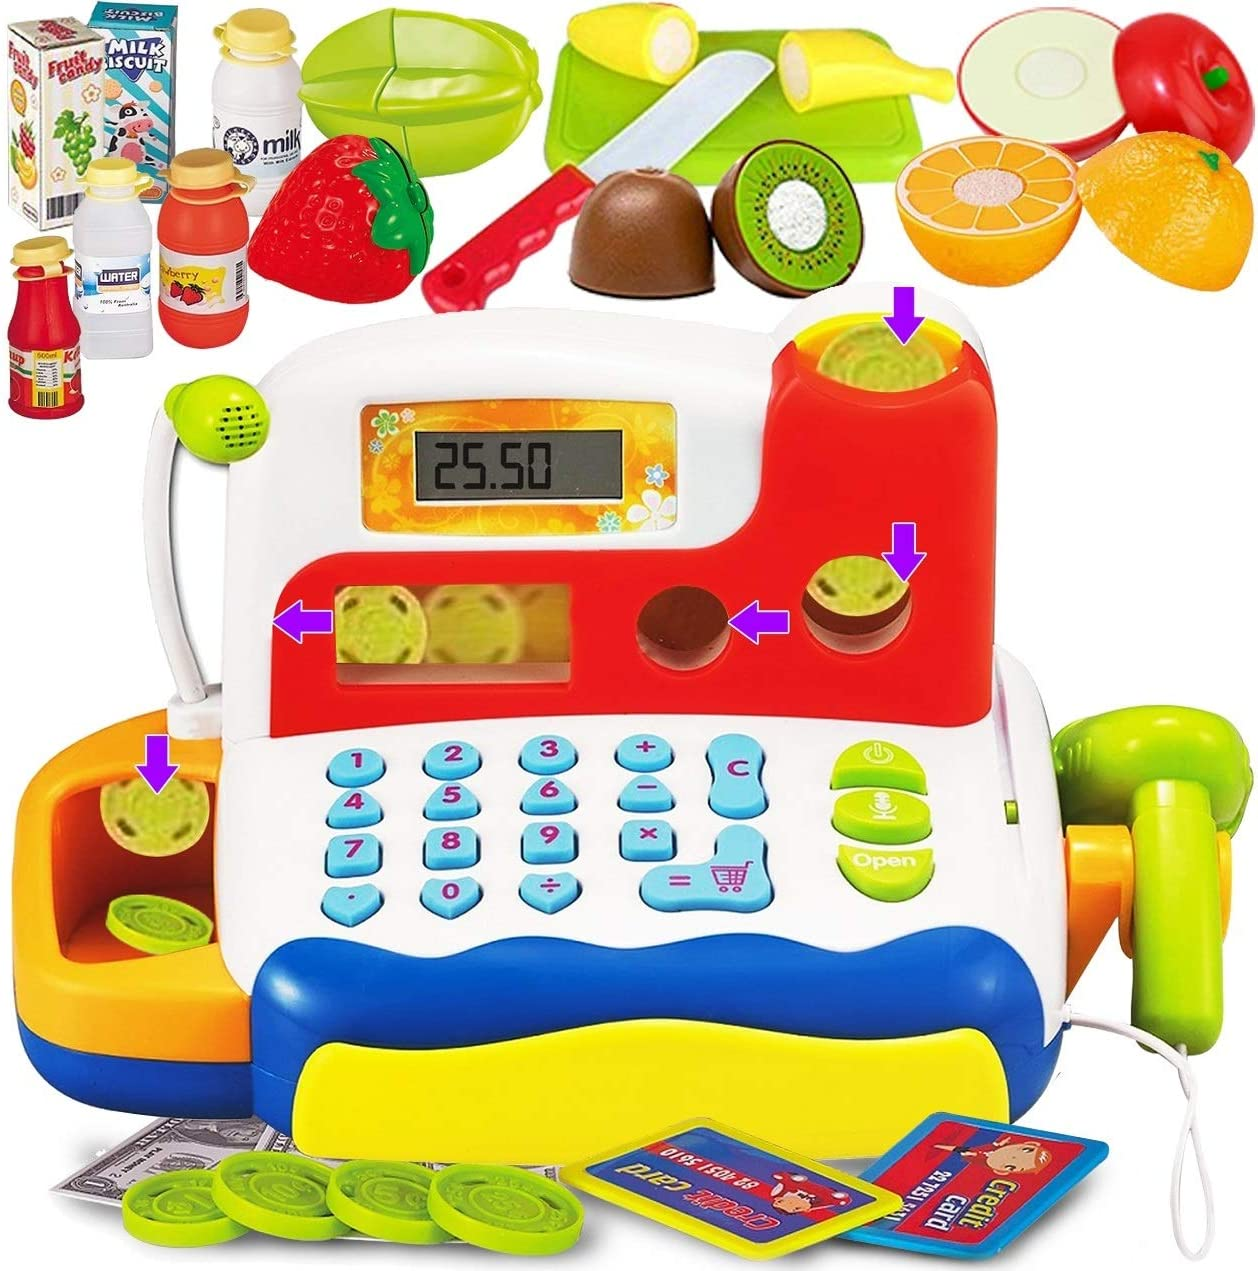 FUNERICA Durable Cash Register Toy Kids Ranking TOP4 High quality with So Electronic for